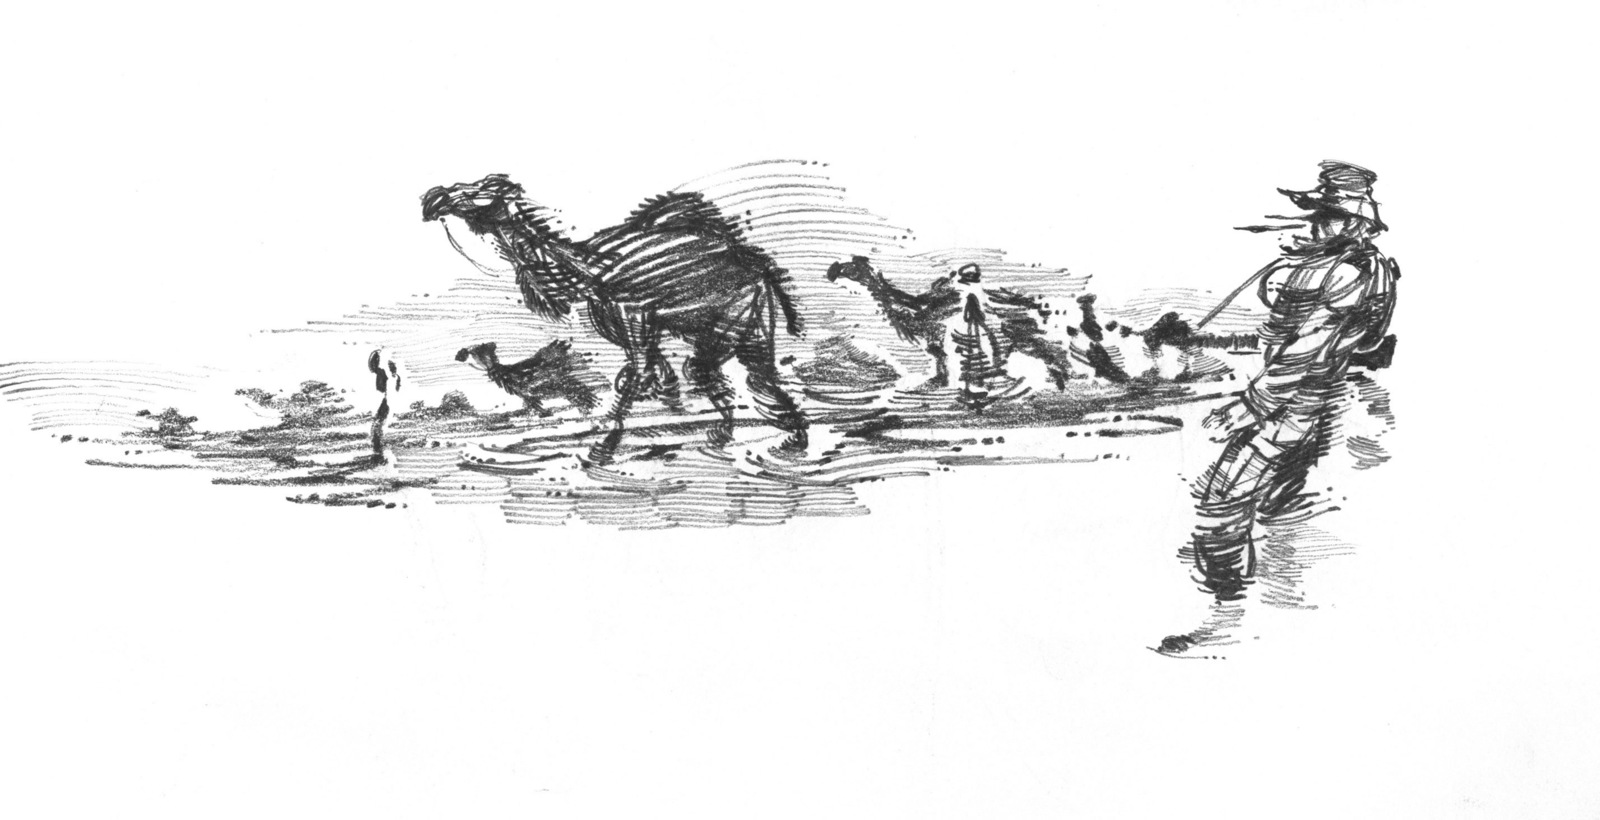 A hand-sketched illustration by US Marine Corps (USMC) Sergeant (SGT) Jack M. Carrillo, showing a USMC Marine assigned to C/Company, 1ST Tank Battalion, conducting a roving watch as a group of camels moves past his position, during a sand storm. Illustrated during Operation IRAQI FREEDOM